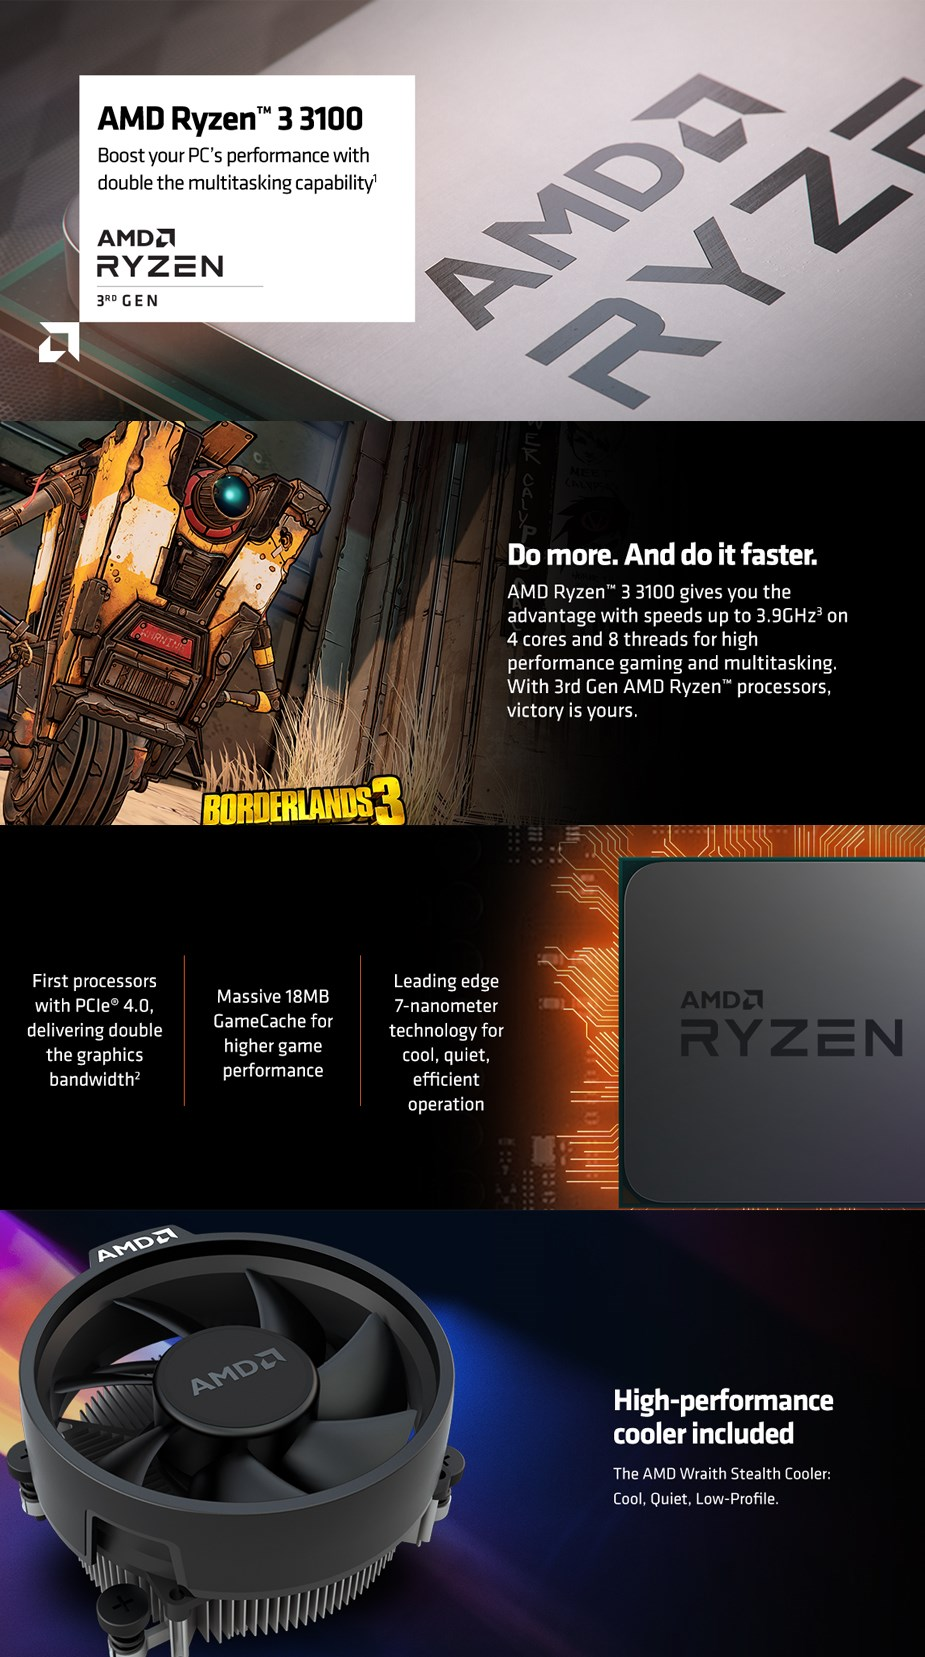 amd-ryzen-3-3100-4-core-socket-am4-36ghz-cpu-processor-wraith-stealth-cooler-ac34686-5.jpg